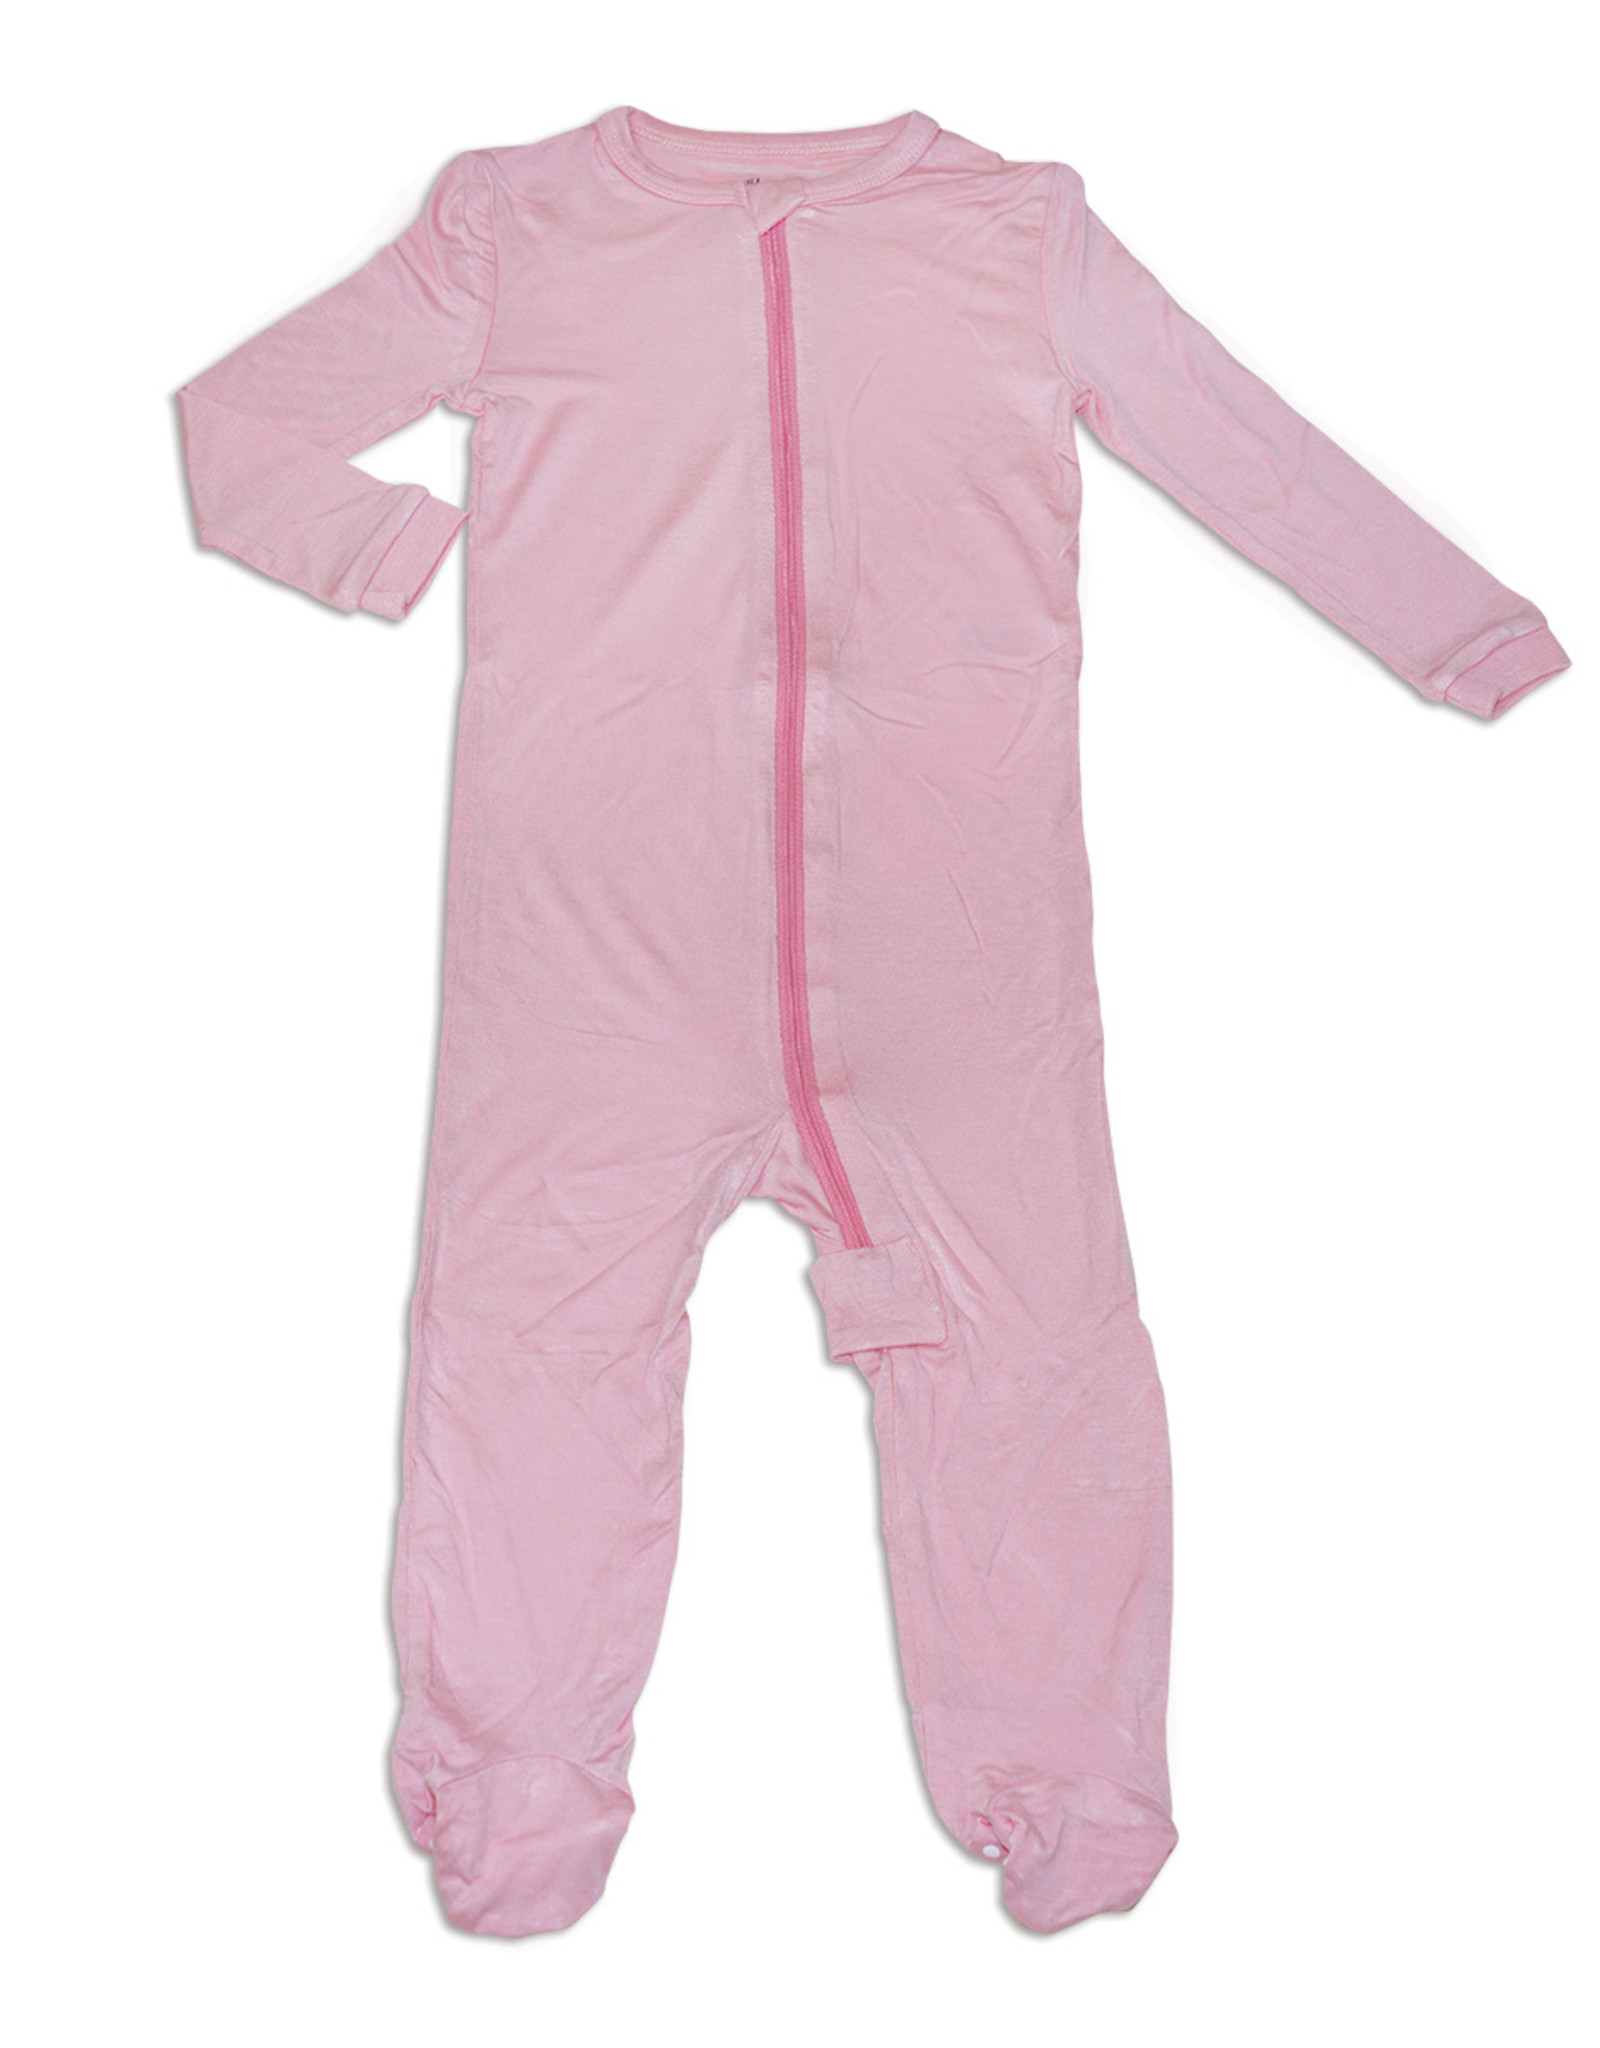 Silkberry Bamboo Footed Sleeper w/Zip - Jelly Fish Pink